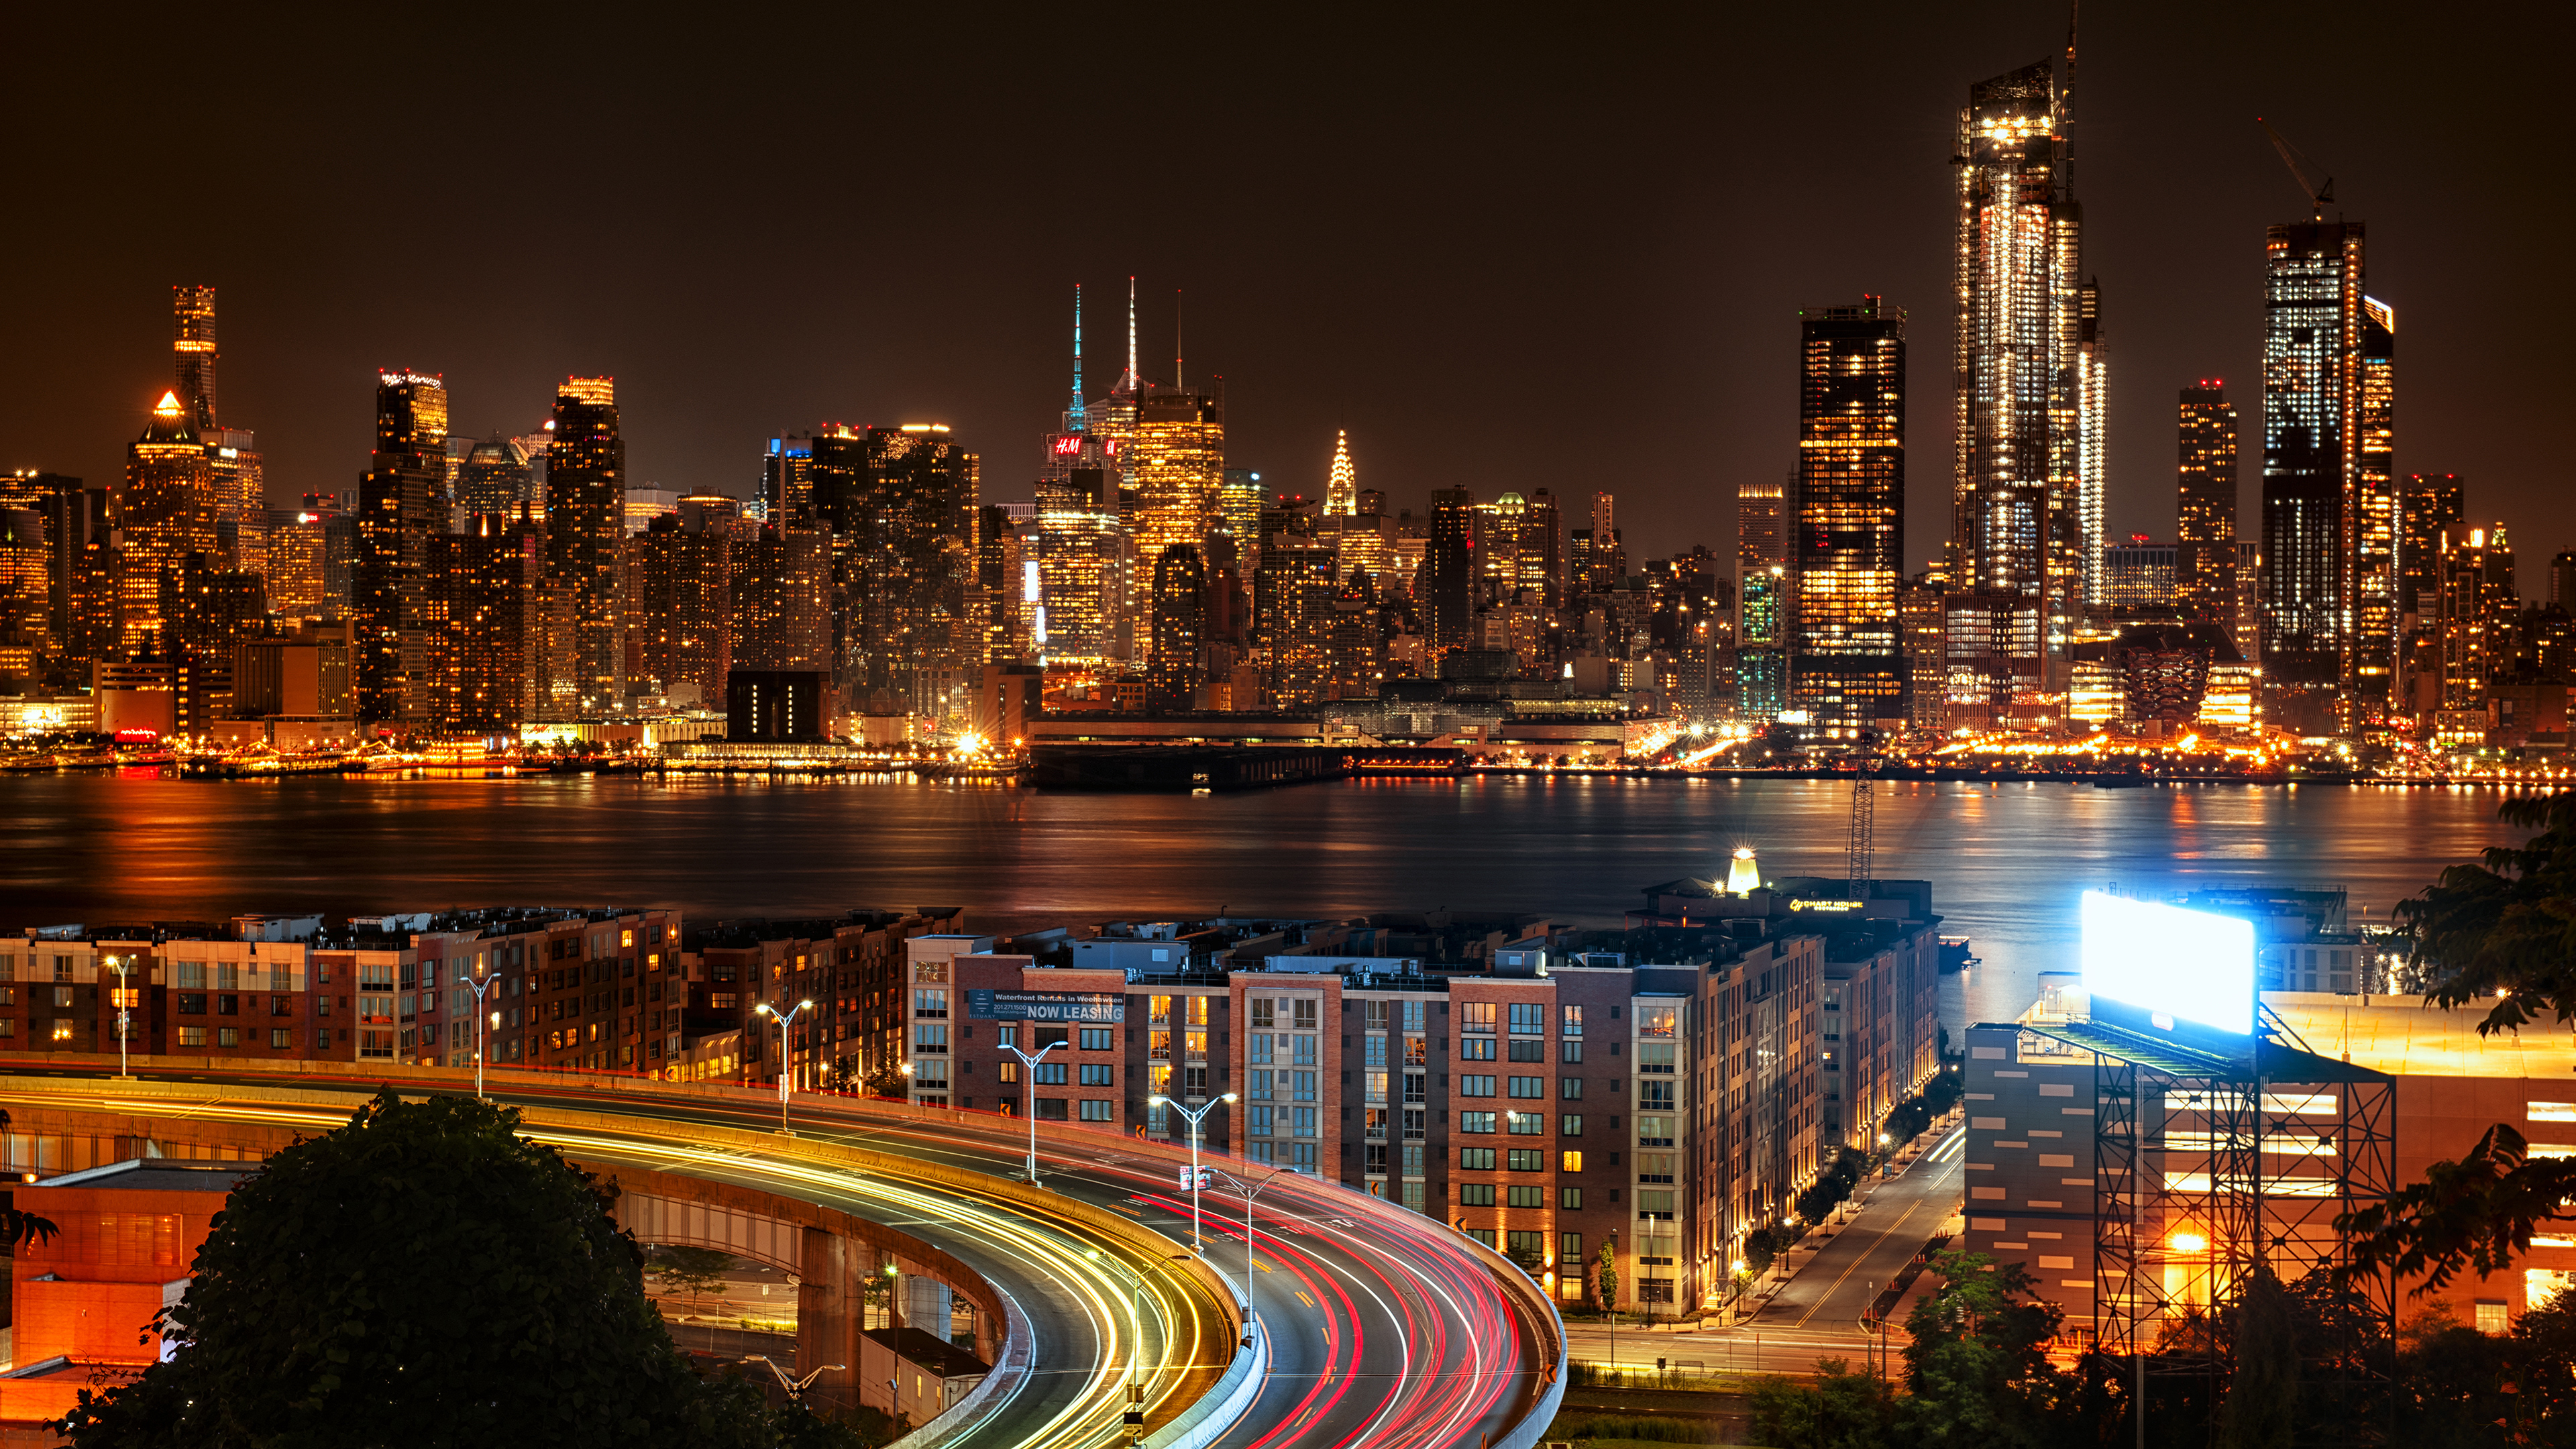 Wallpaper 4k New York City View From New Jersey 4k At Night